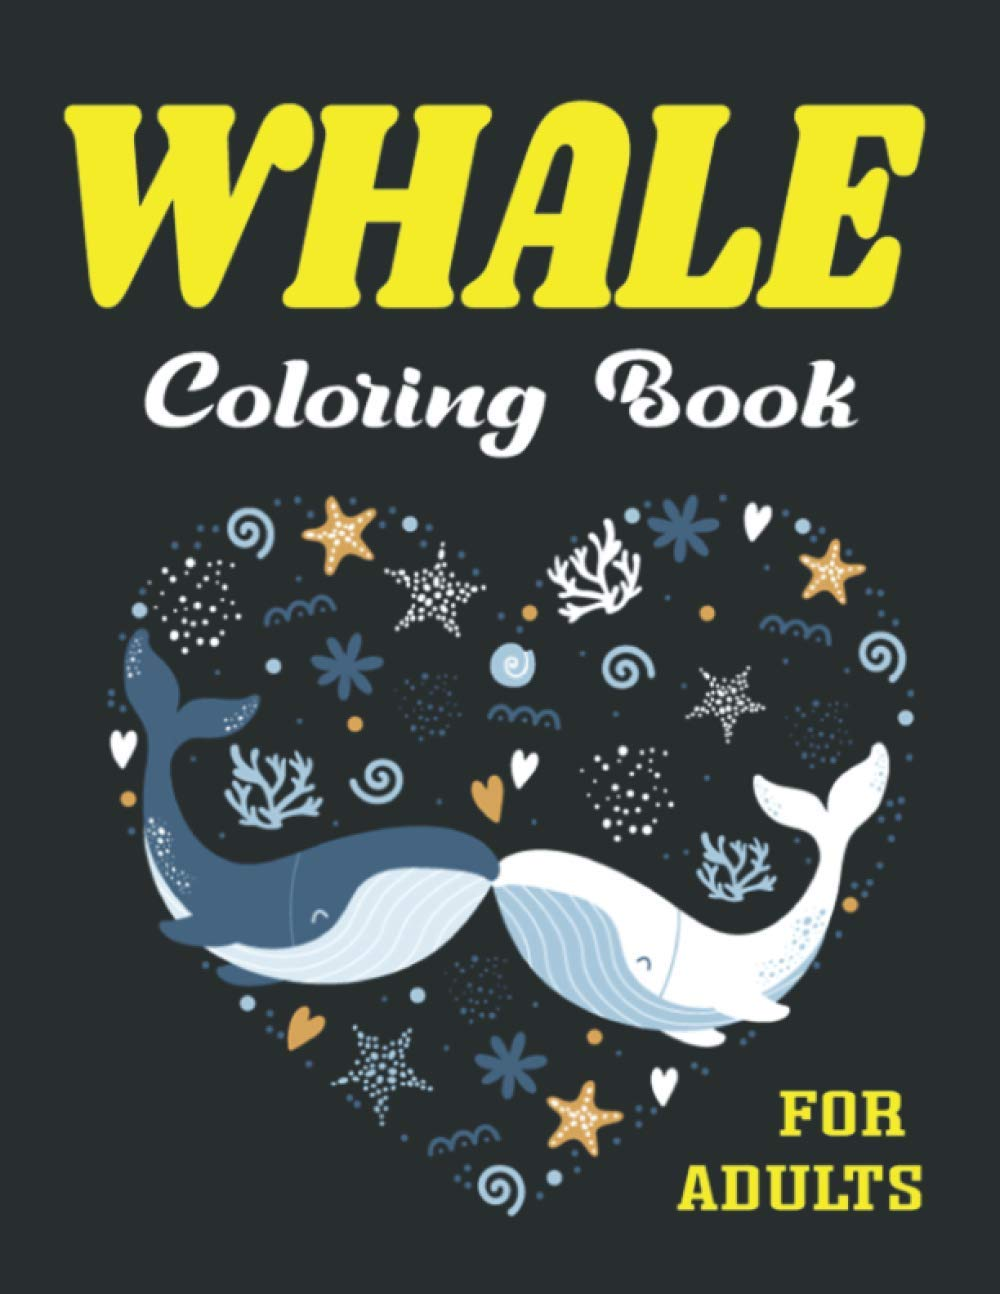 Whale Coloring Book For Adults Unique Coloring Book Easy Fun Beautiful Coloring Pages For Adults And Grown Up Awesome Adults Relaxation Gifts Press Mahleen 9798565421378 Amazon Com Books